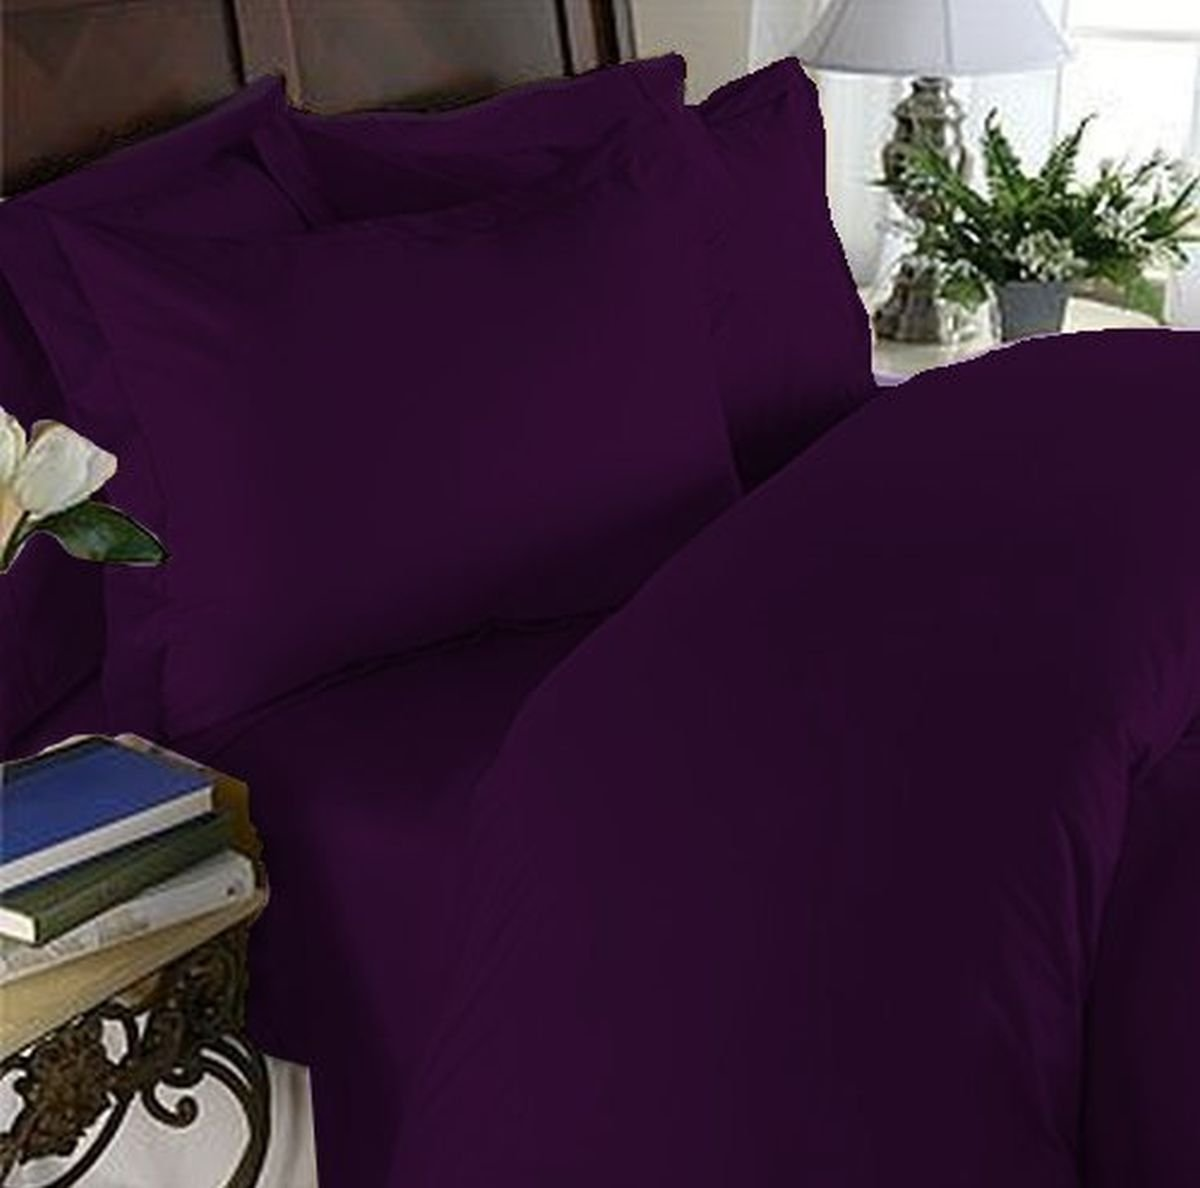 Elegant Comfort 4 Piece 1500 Thread Count Luxury Silky Soft Egyptian Quality Coziest Sheet Set, Queen, Eggplant-Plum